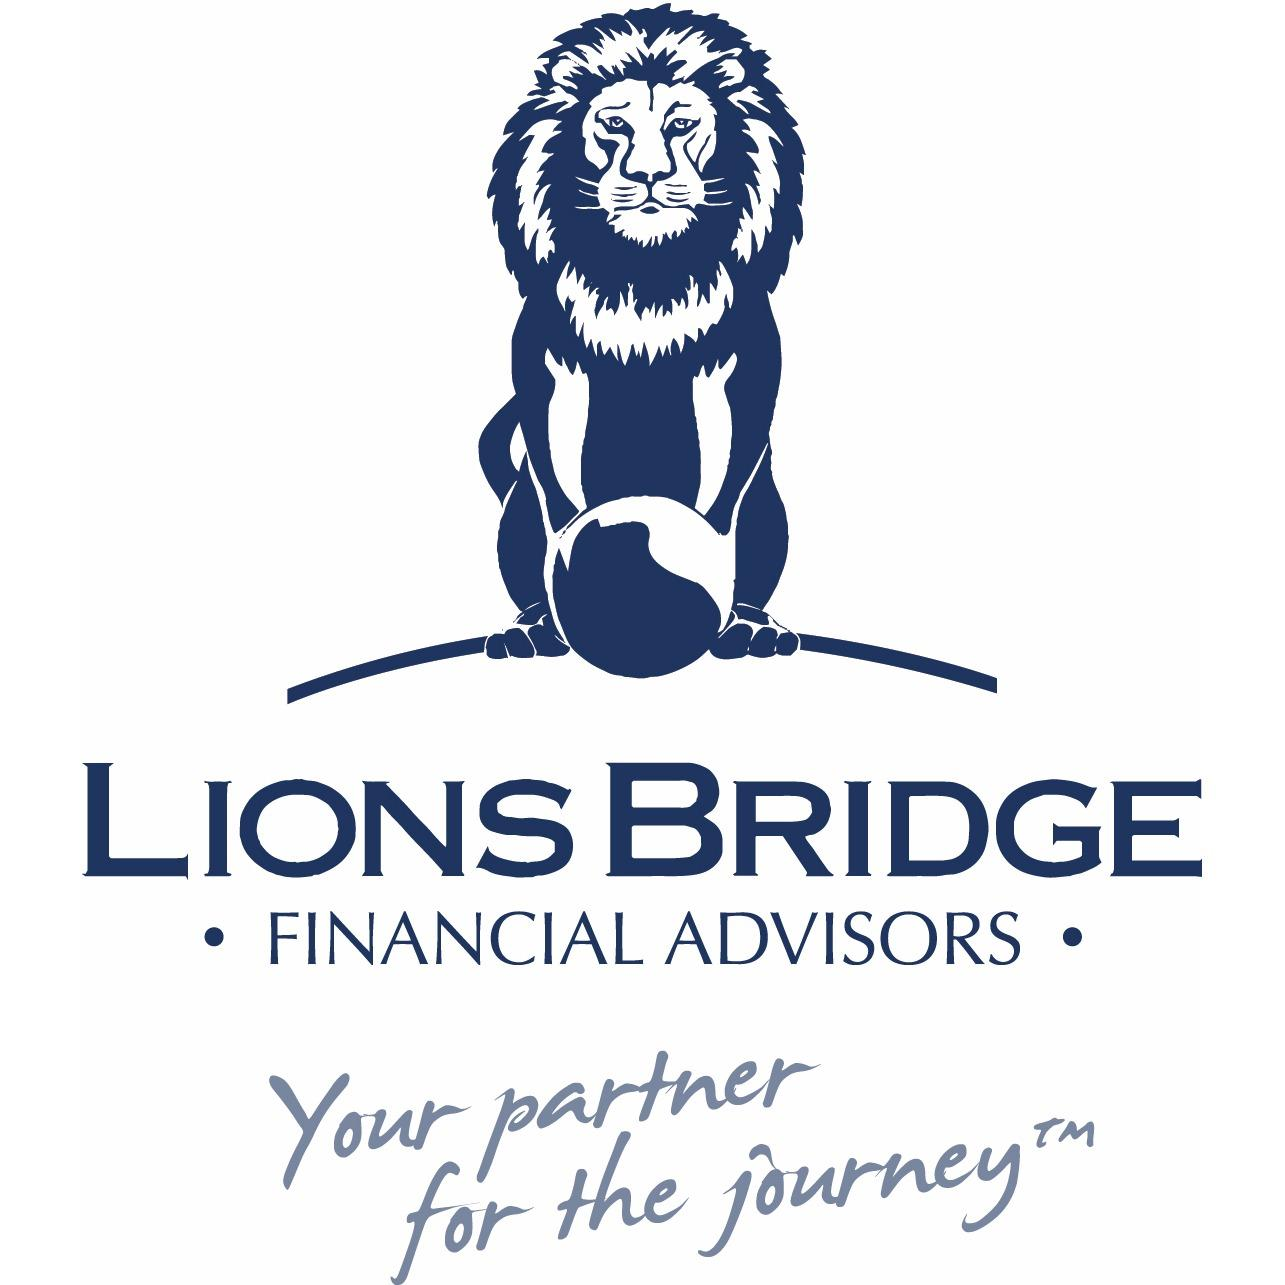 Lions Bridge Financial Advisors, Inc. image 0